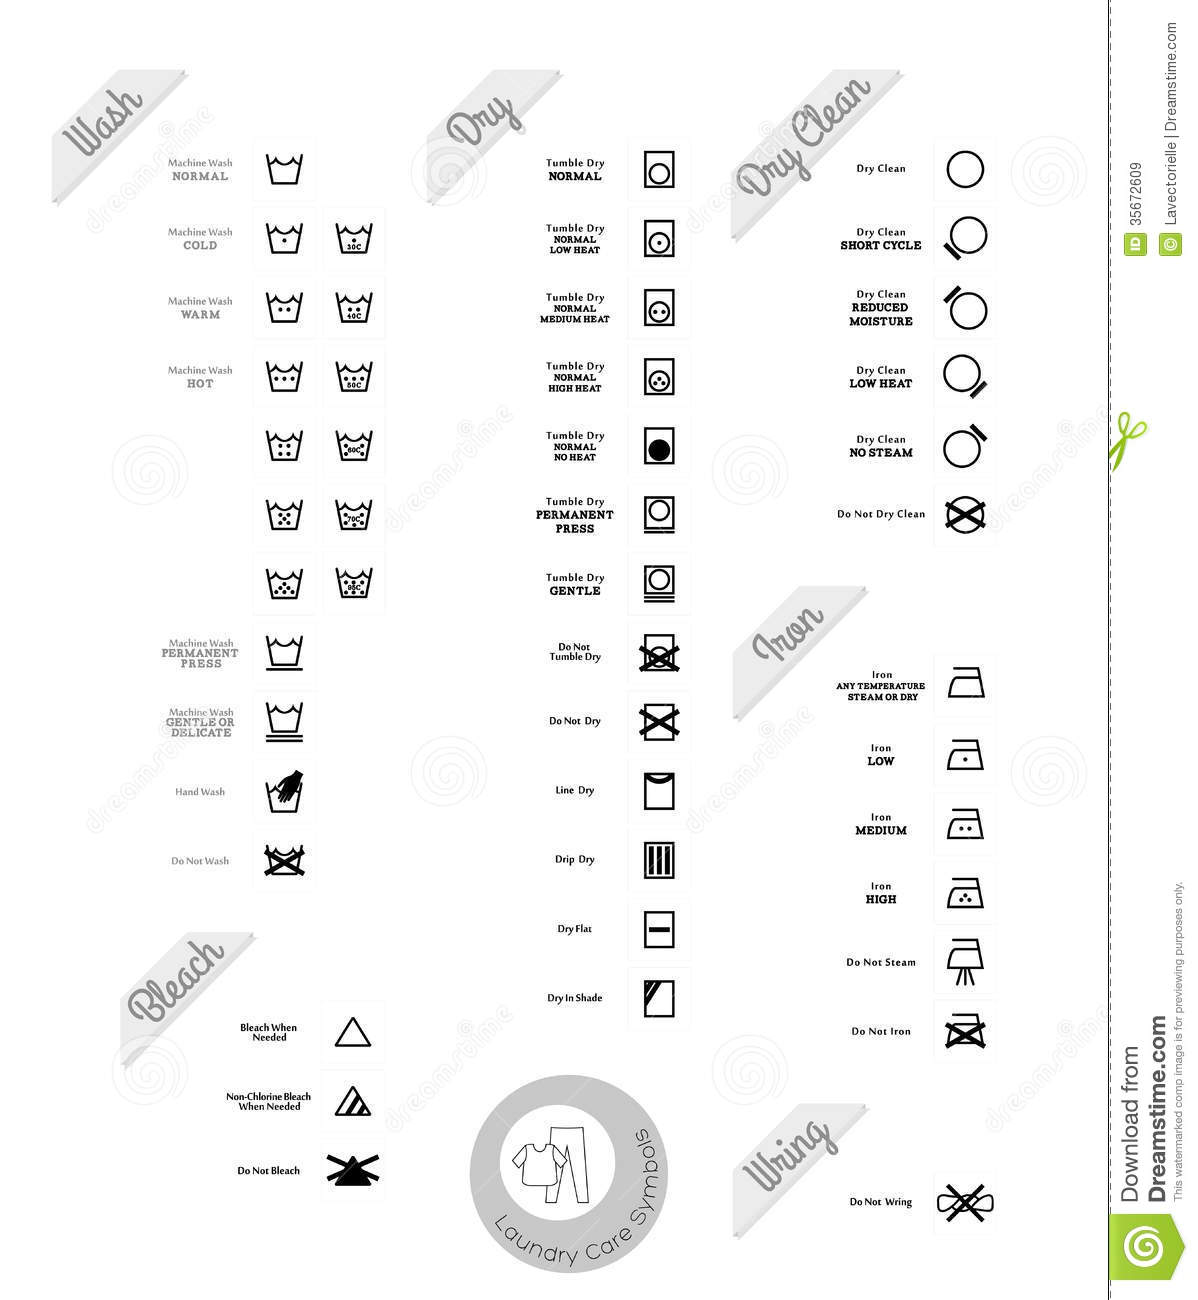 Fabric care symbols 2 wiring diagram and fuse box textile care symbols 54 laundry icons together with ducati corse tex c3 fabric jacket as well biocorpaavc Choice Image